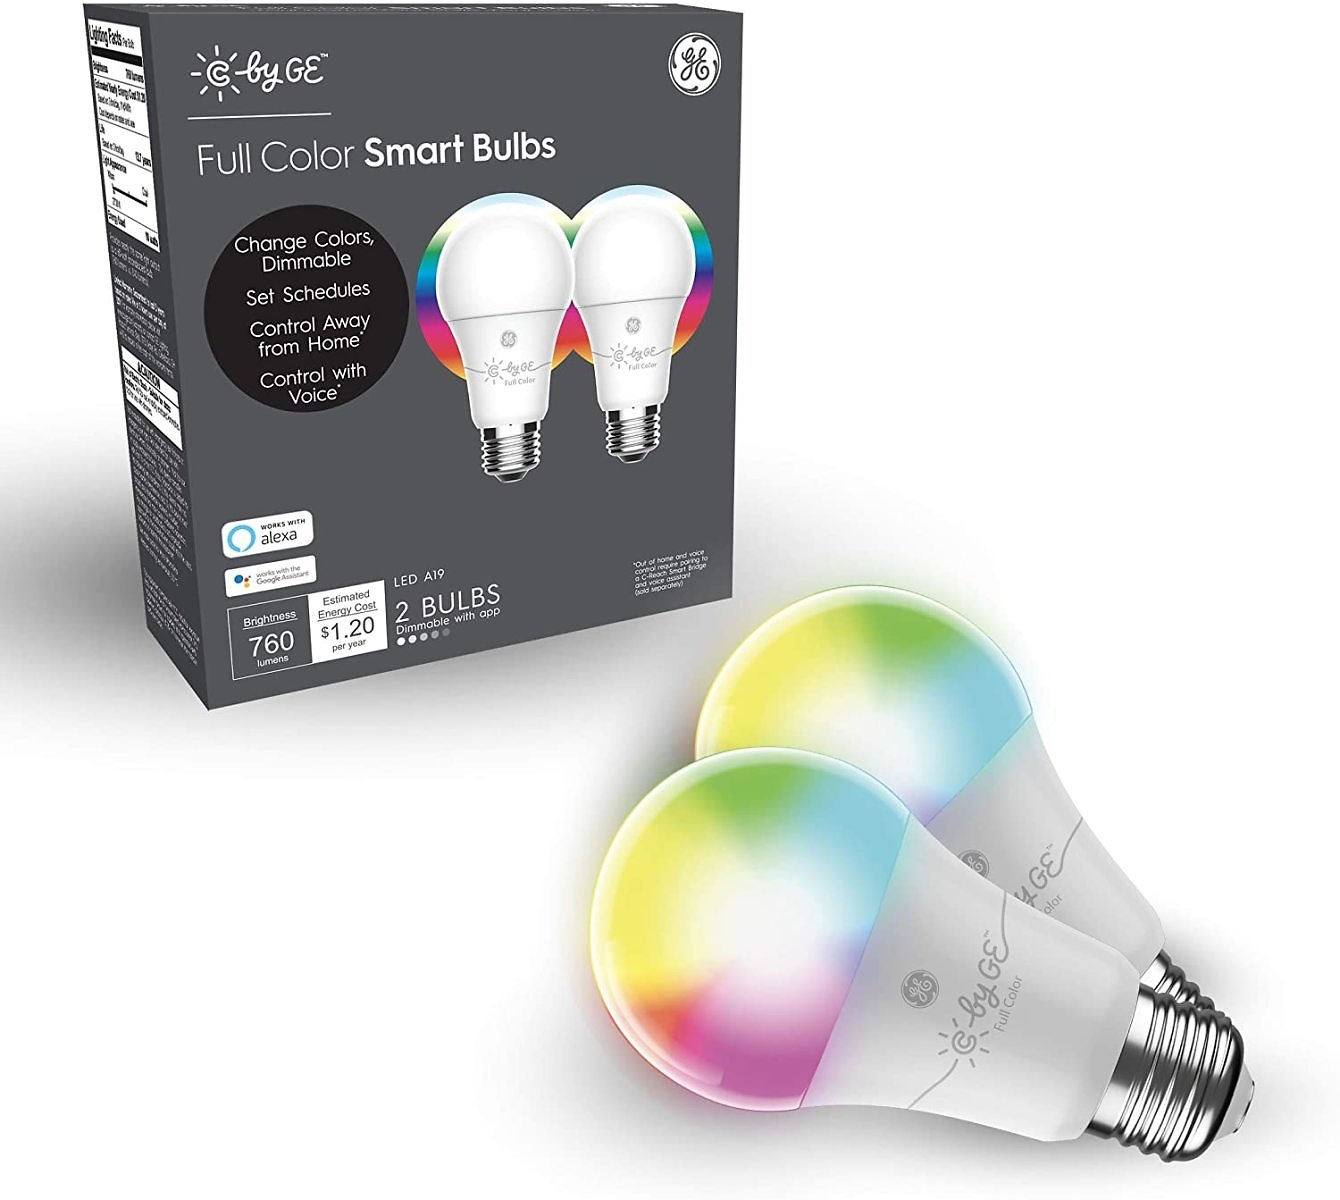 GE Lighting 93105377 C By GE LED A19 Full Color, Works with Alexa and Google Assistant, WiFi Enabled, 2-Pack Smart Light Bulb